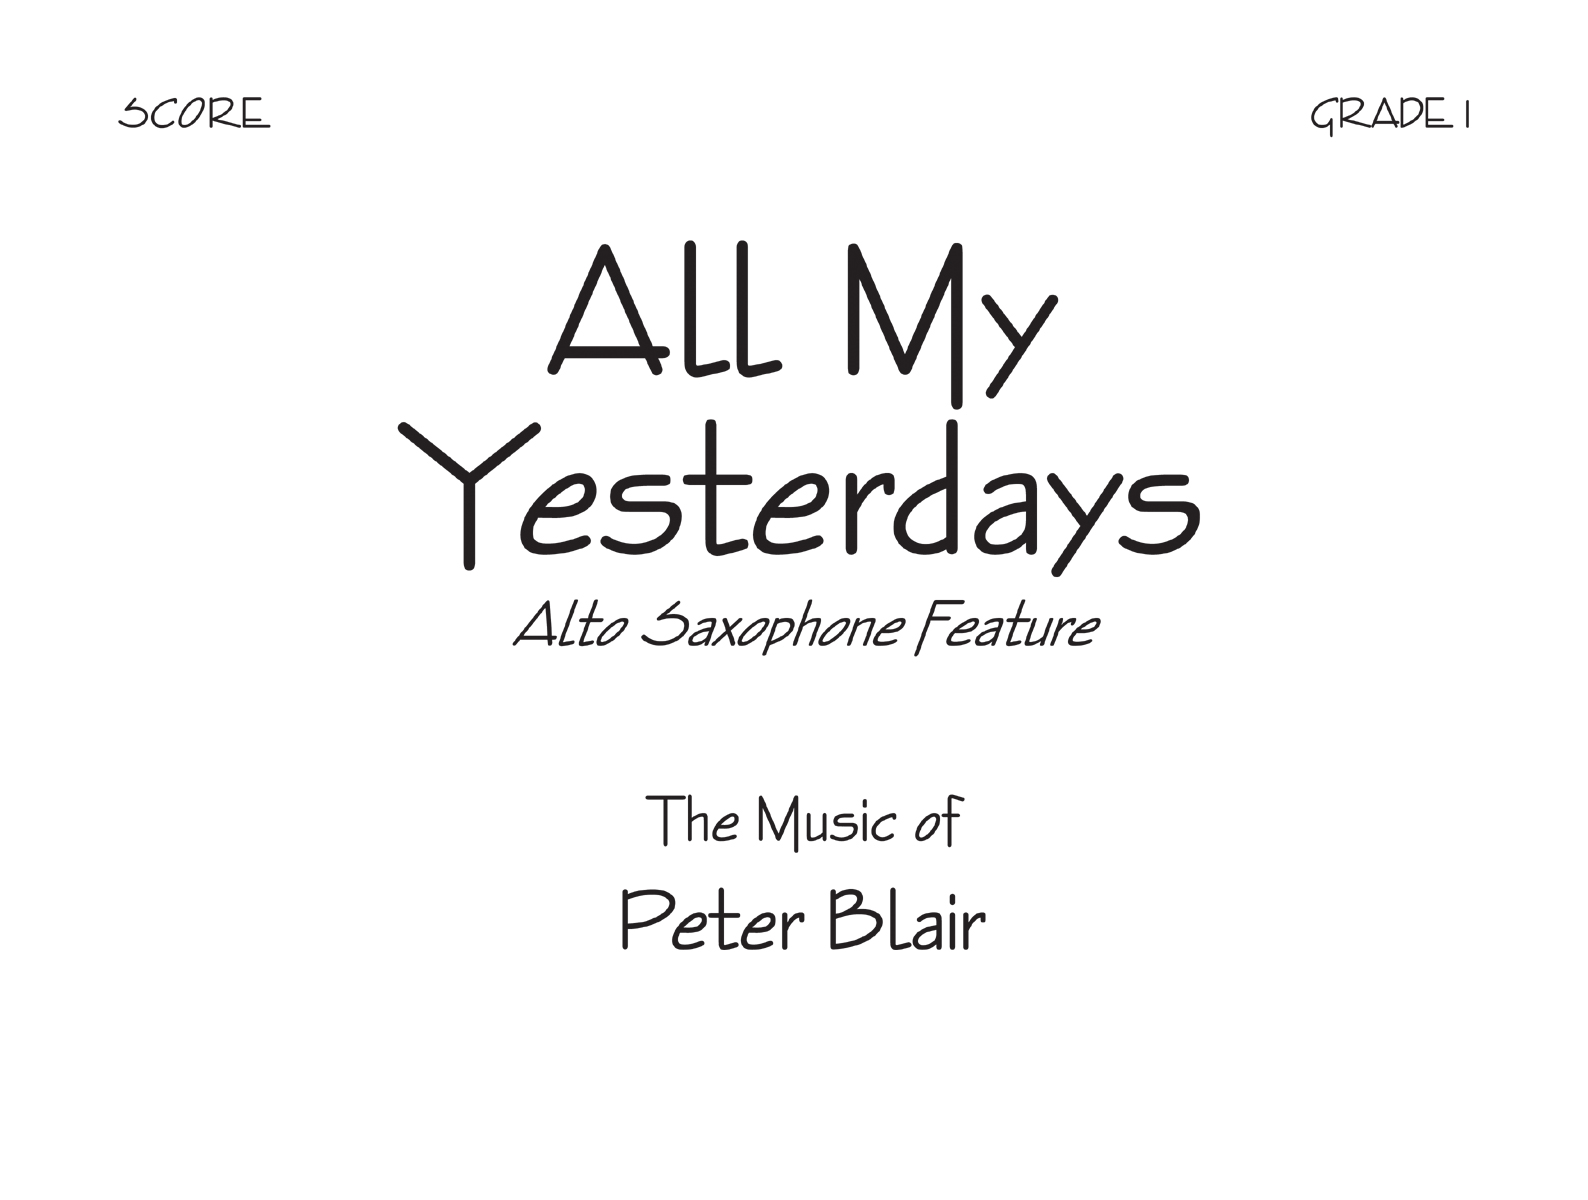 All My Yesterdays - Score